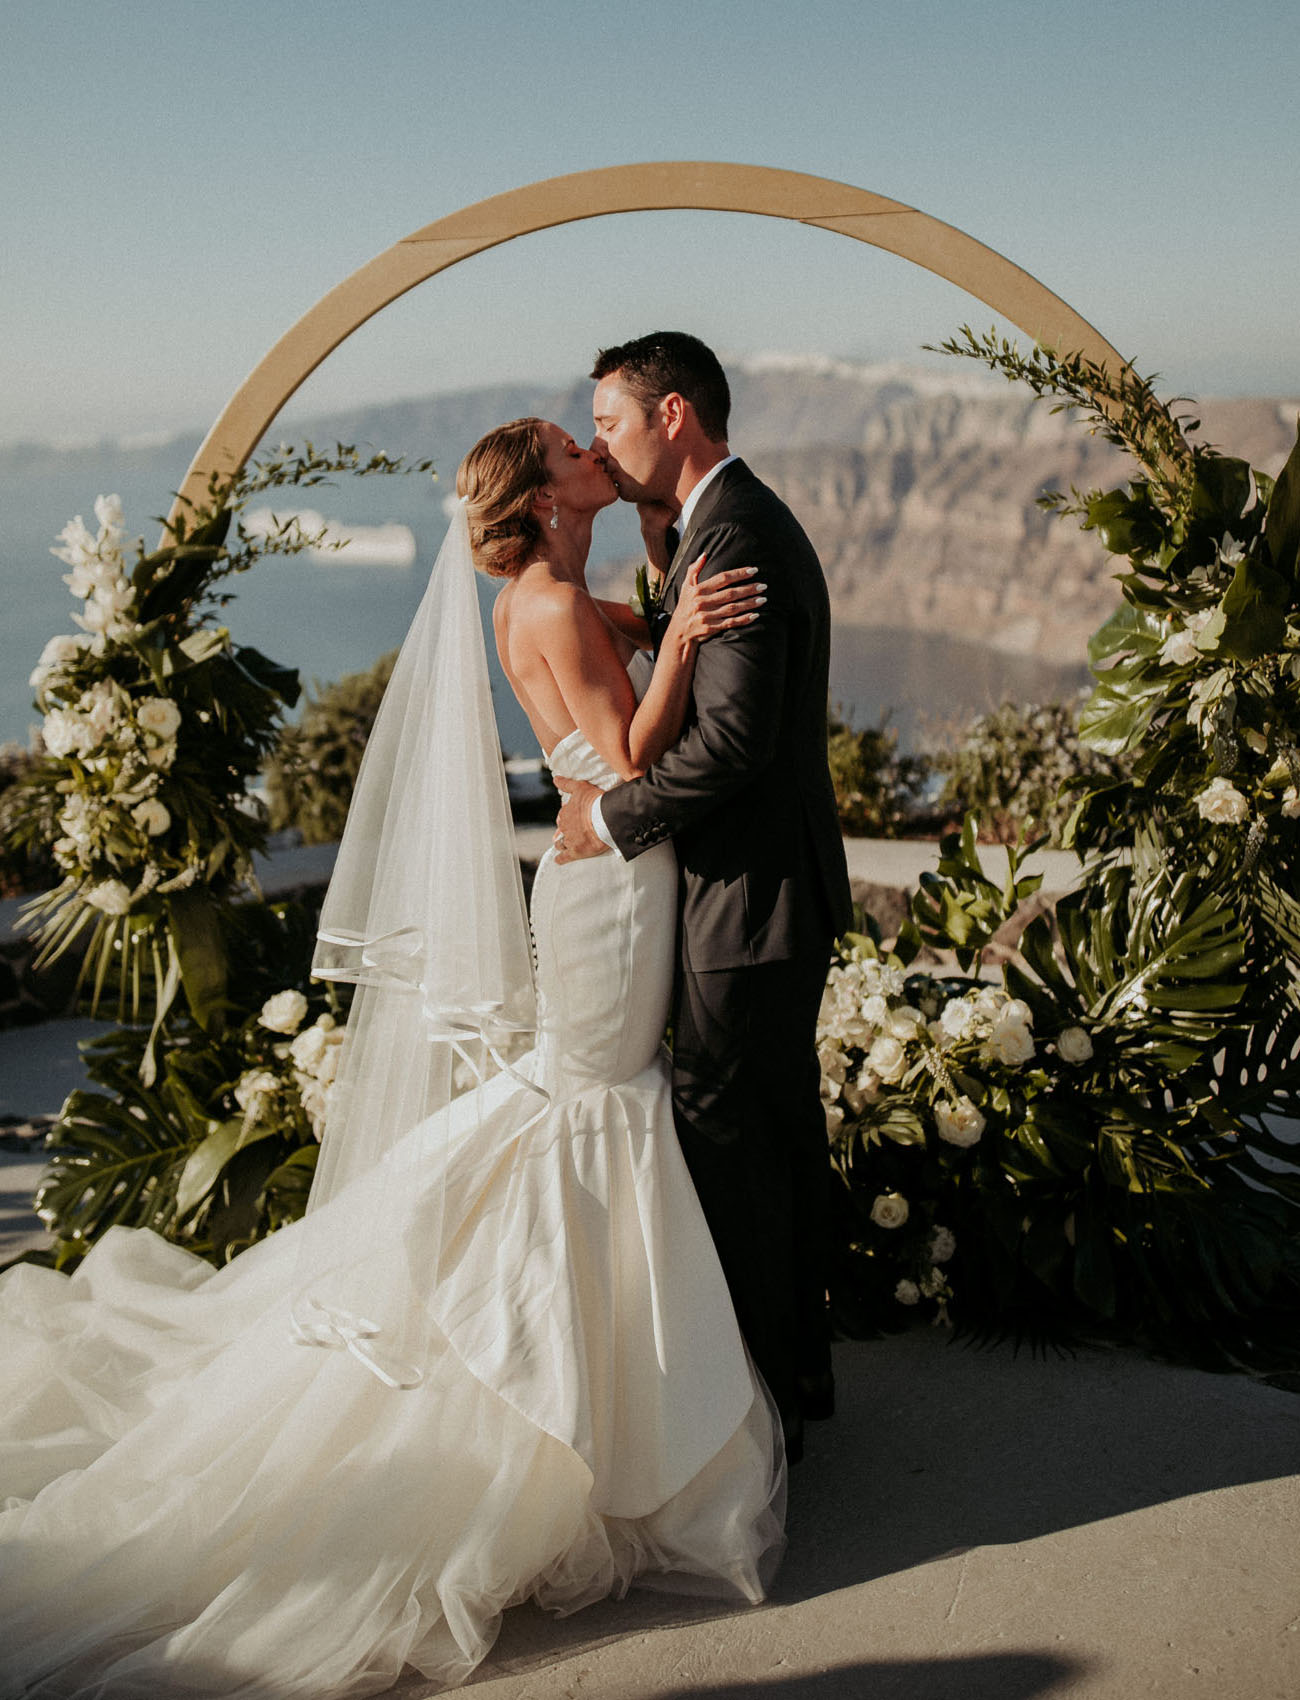 The bride was wearing a strapless mermaid wedding dress with a veil and a train, the groom rocked a classic black tux